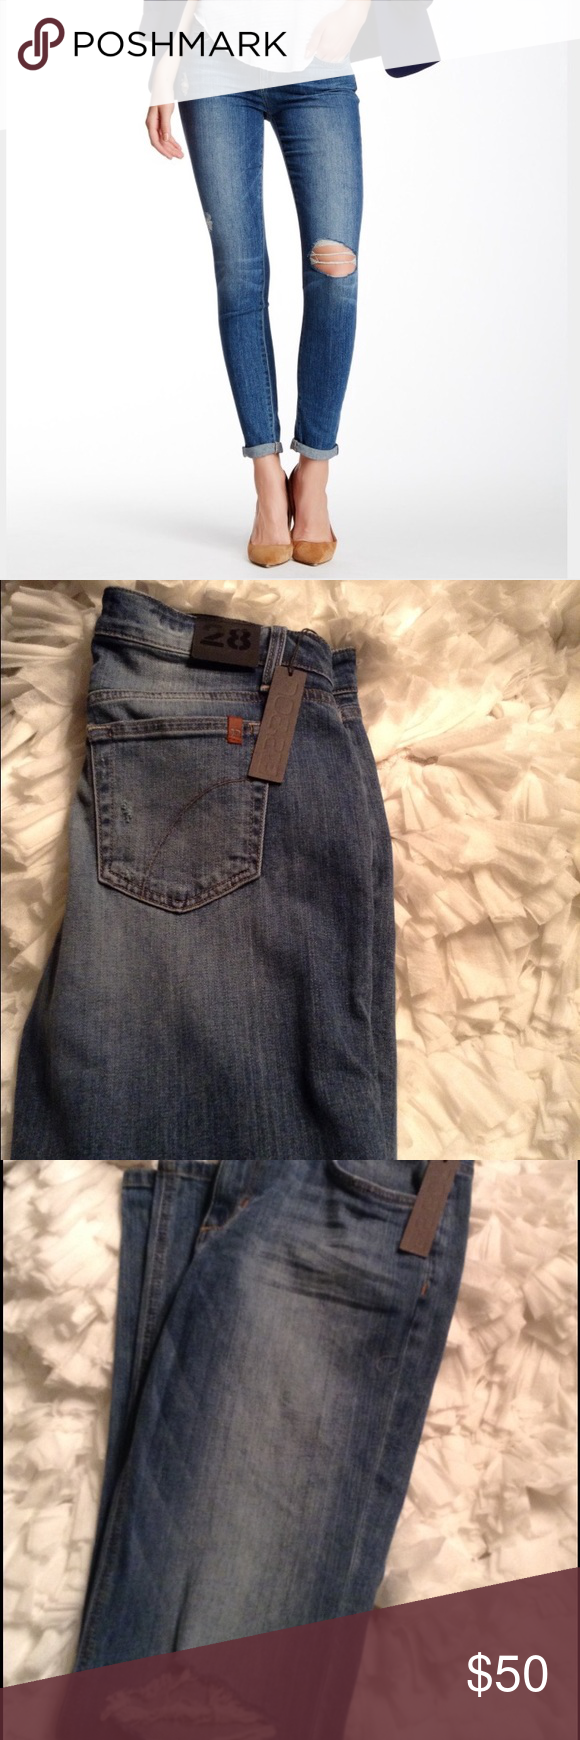 Authentic Joe's jeans Joes blue rolled skinny ankle jeans. They are a must have for your wardrobe. Joe's Jeans Jeans Skinny